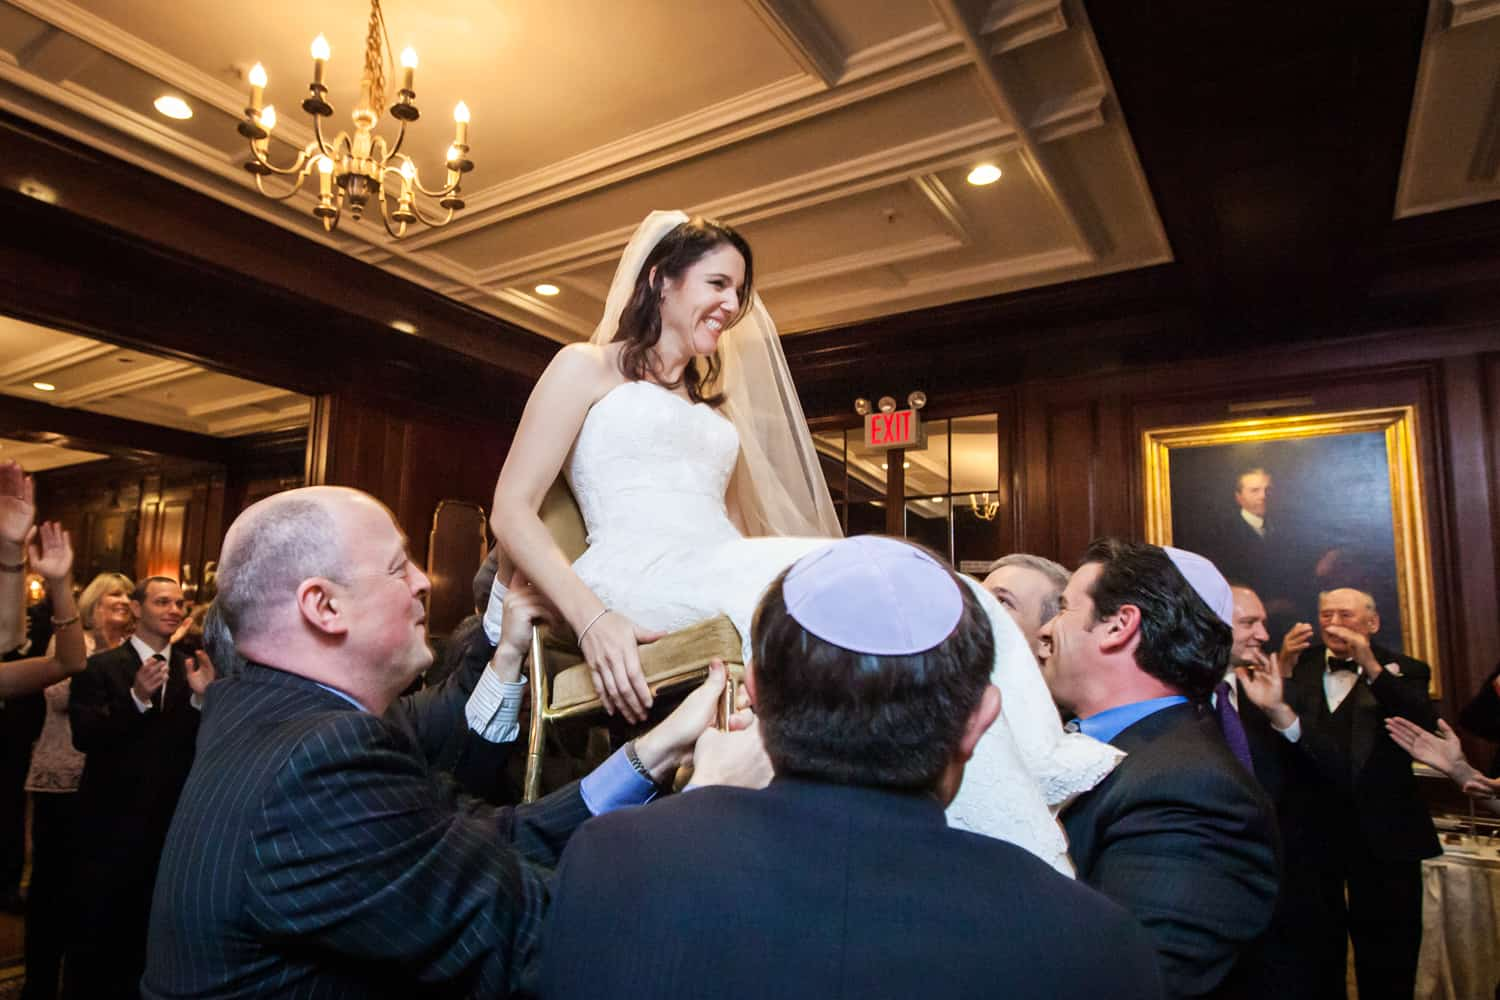 Bride lifted up on chair during hora dance at Harvard Club wedding